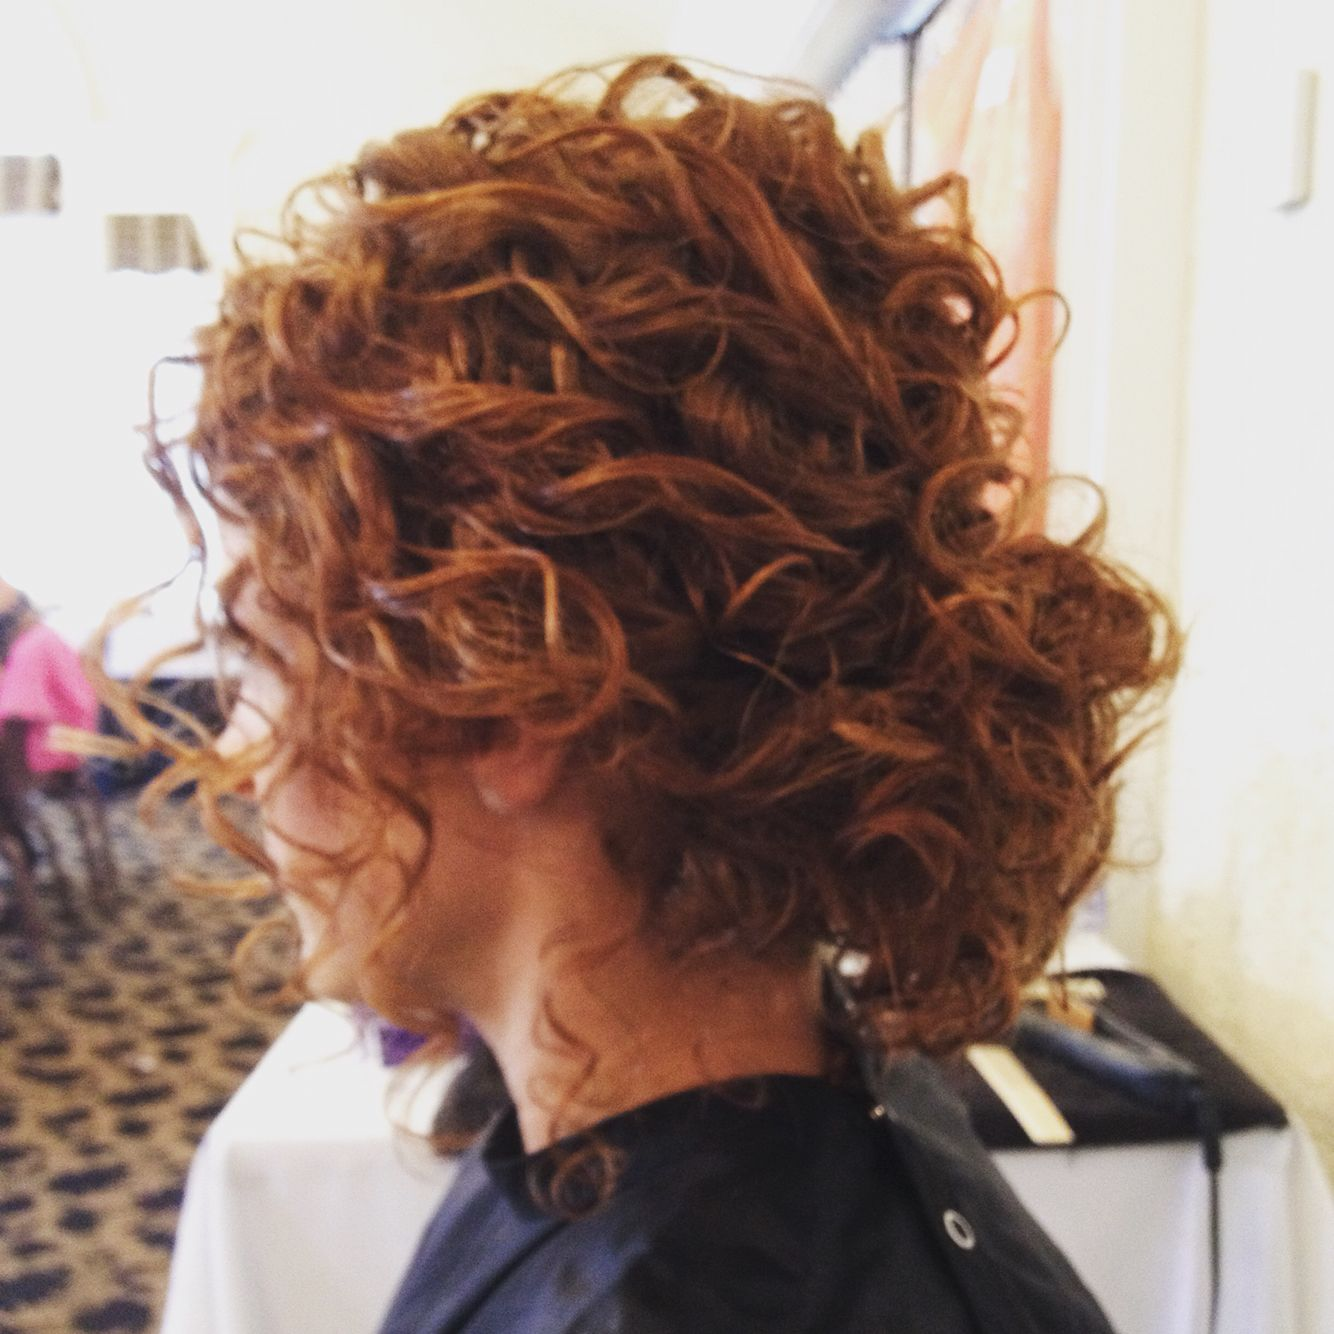 Naturally Curly Hair Low Bun Updo Curly Hair Styles Naturally Hair Styles Curly Hair Updo